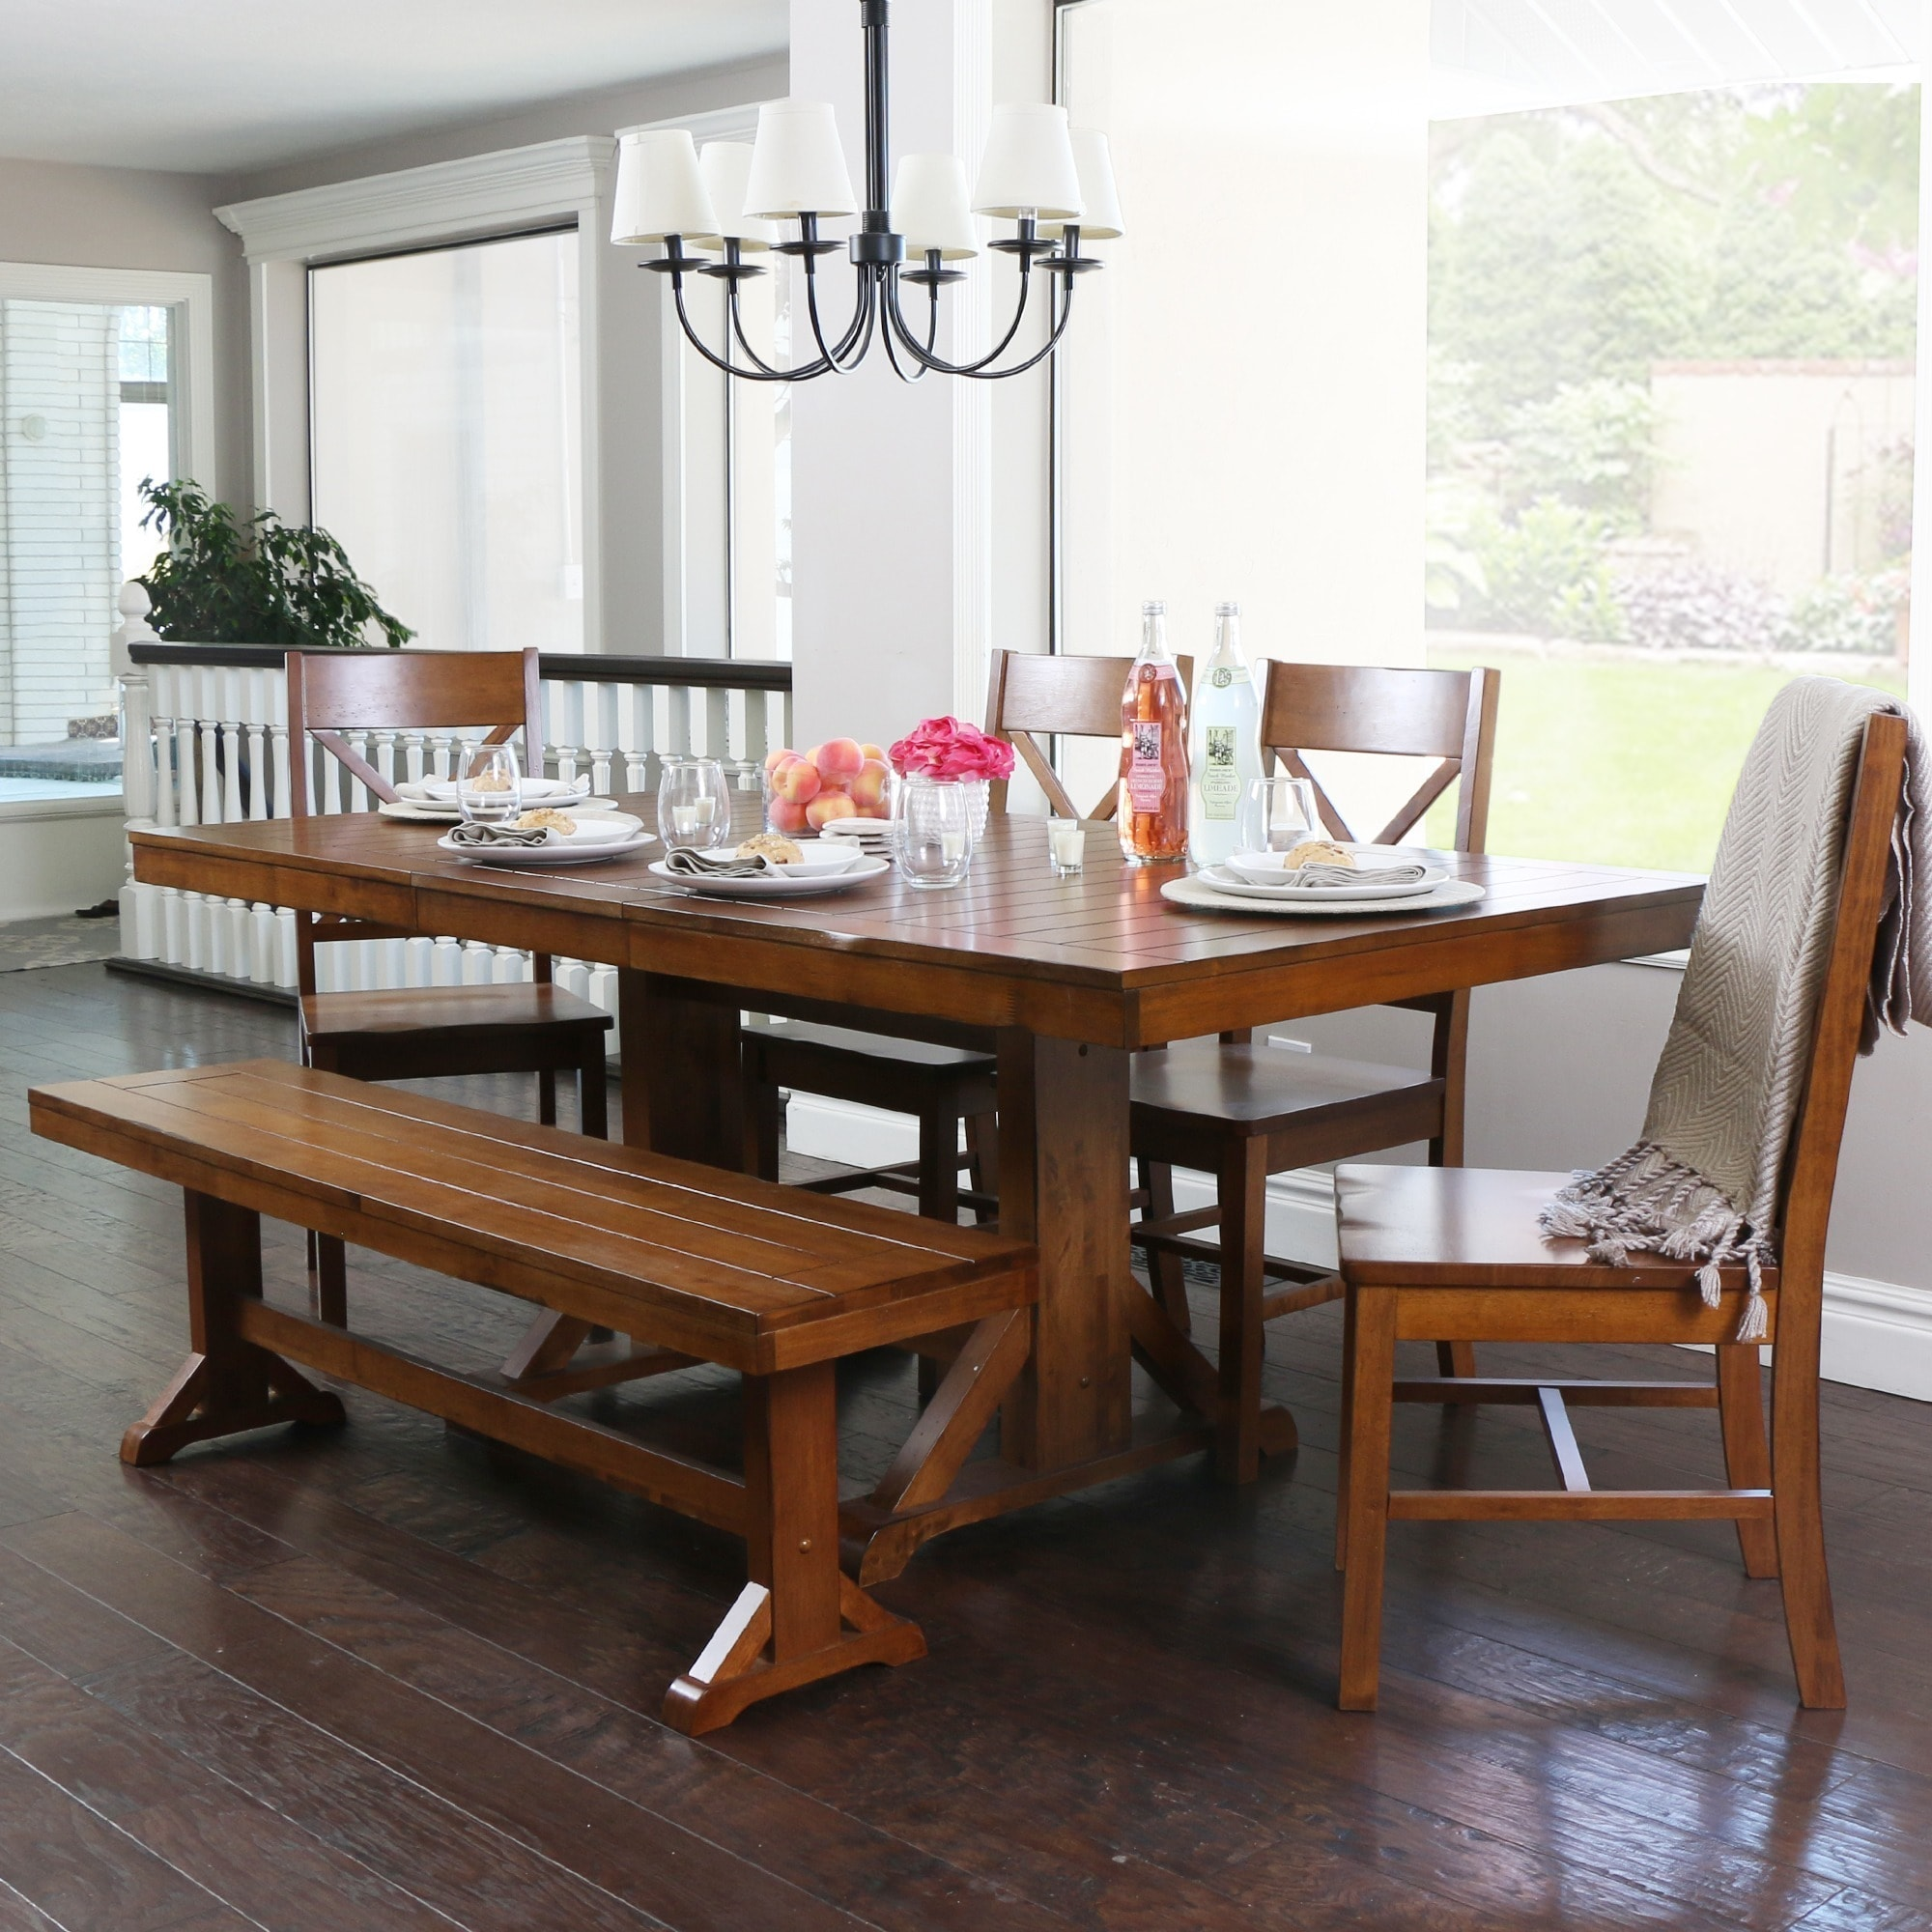 Shop Countryside Chic 6-piece Antique Brown Wood Dining ...